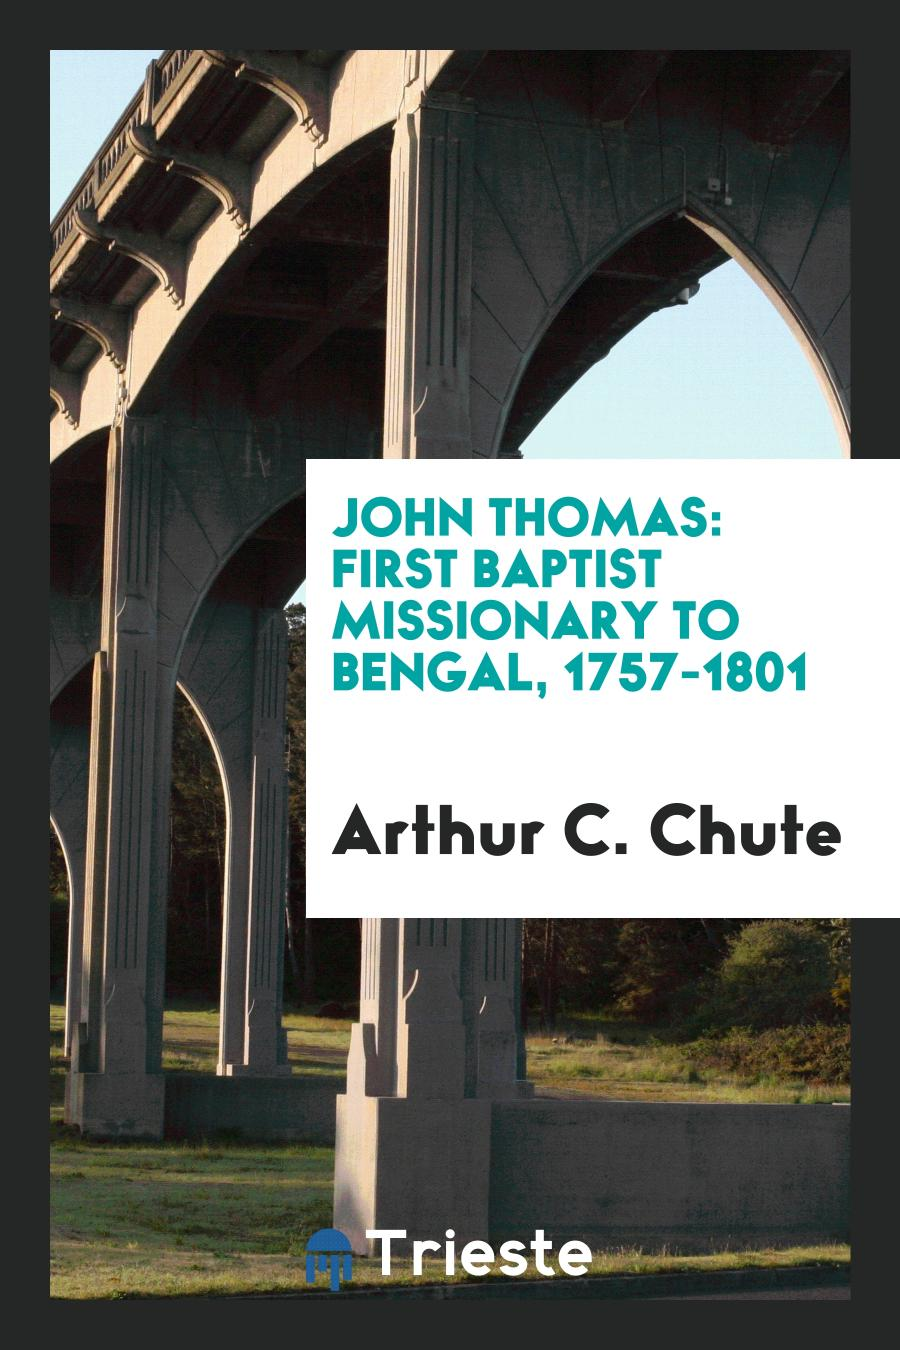 John Thomas: first Baptist missionary to Bengal, 1757-1801